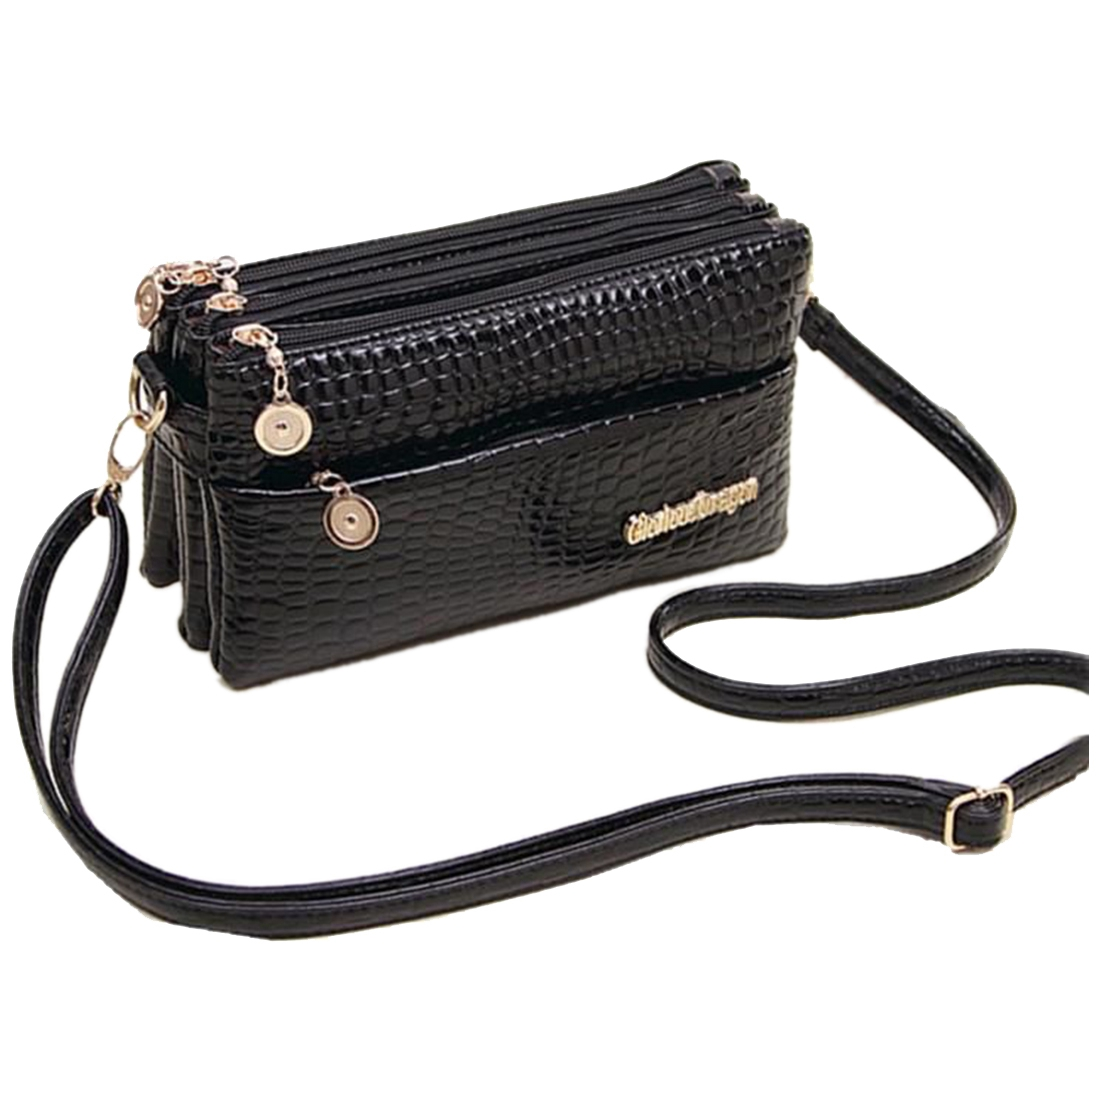 ASDS Femininas Small Shoulder Bag Crocodile Pattern Fashion Bag for Women Crossbody Bags Clutch Handbag